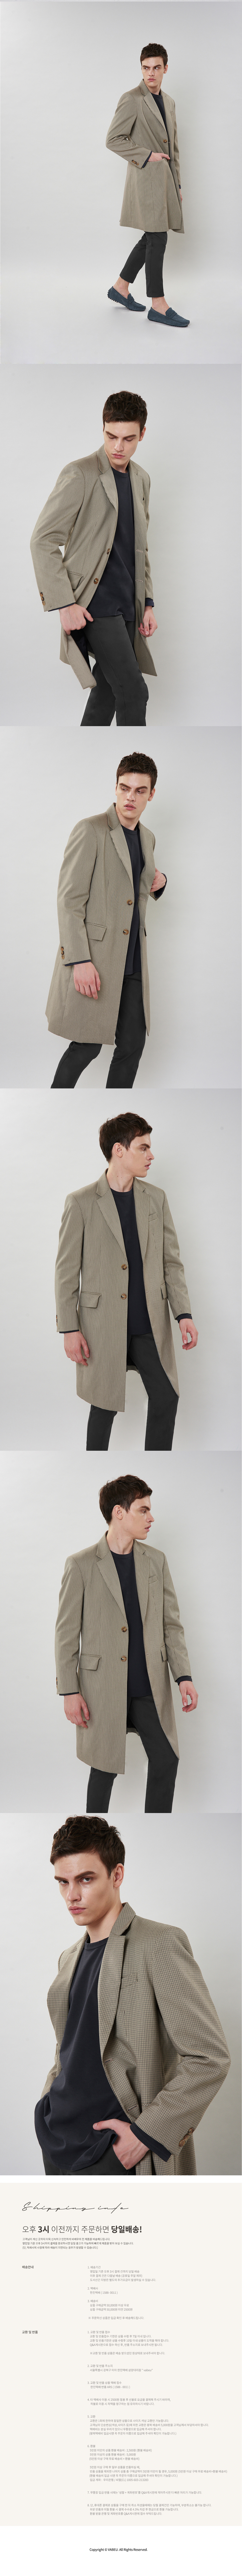 checkcoat_detail_3.jpg